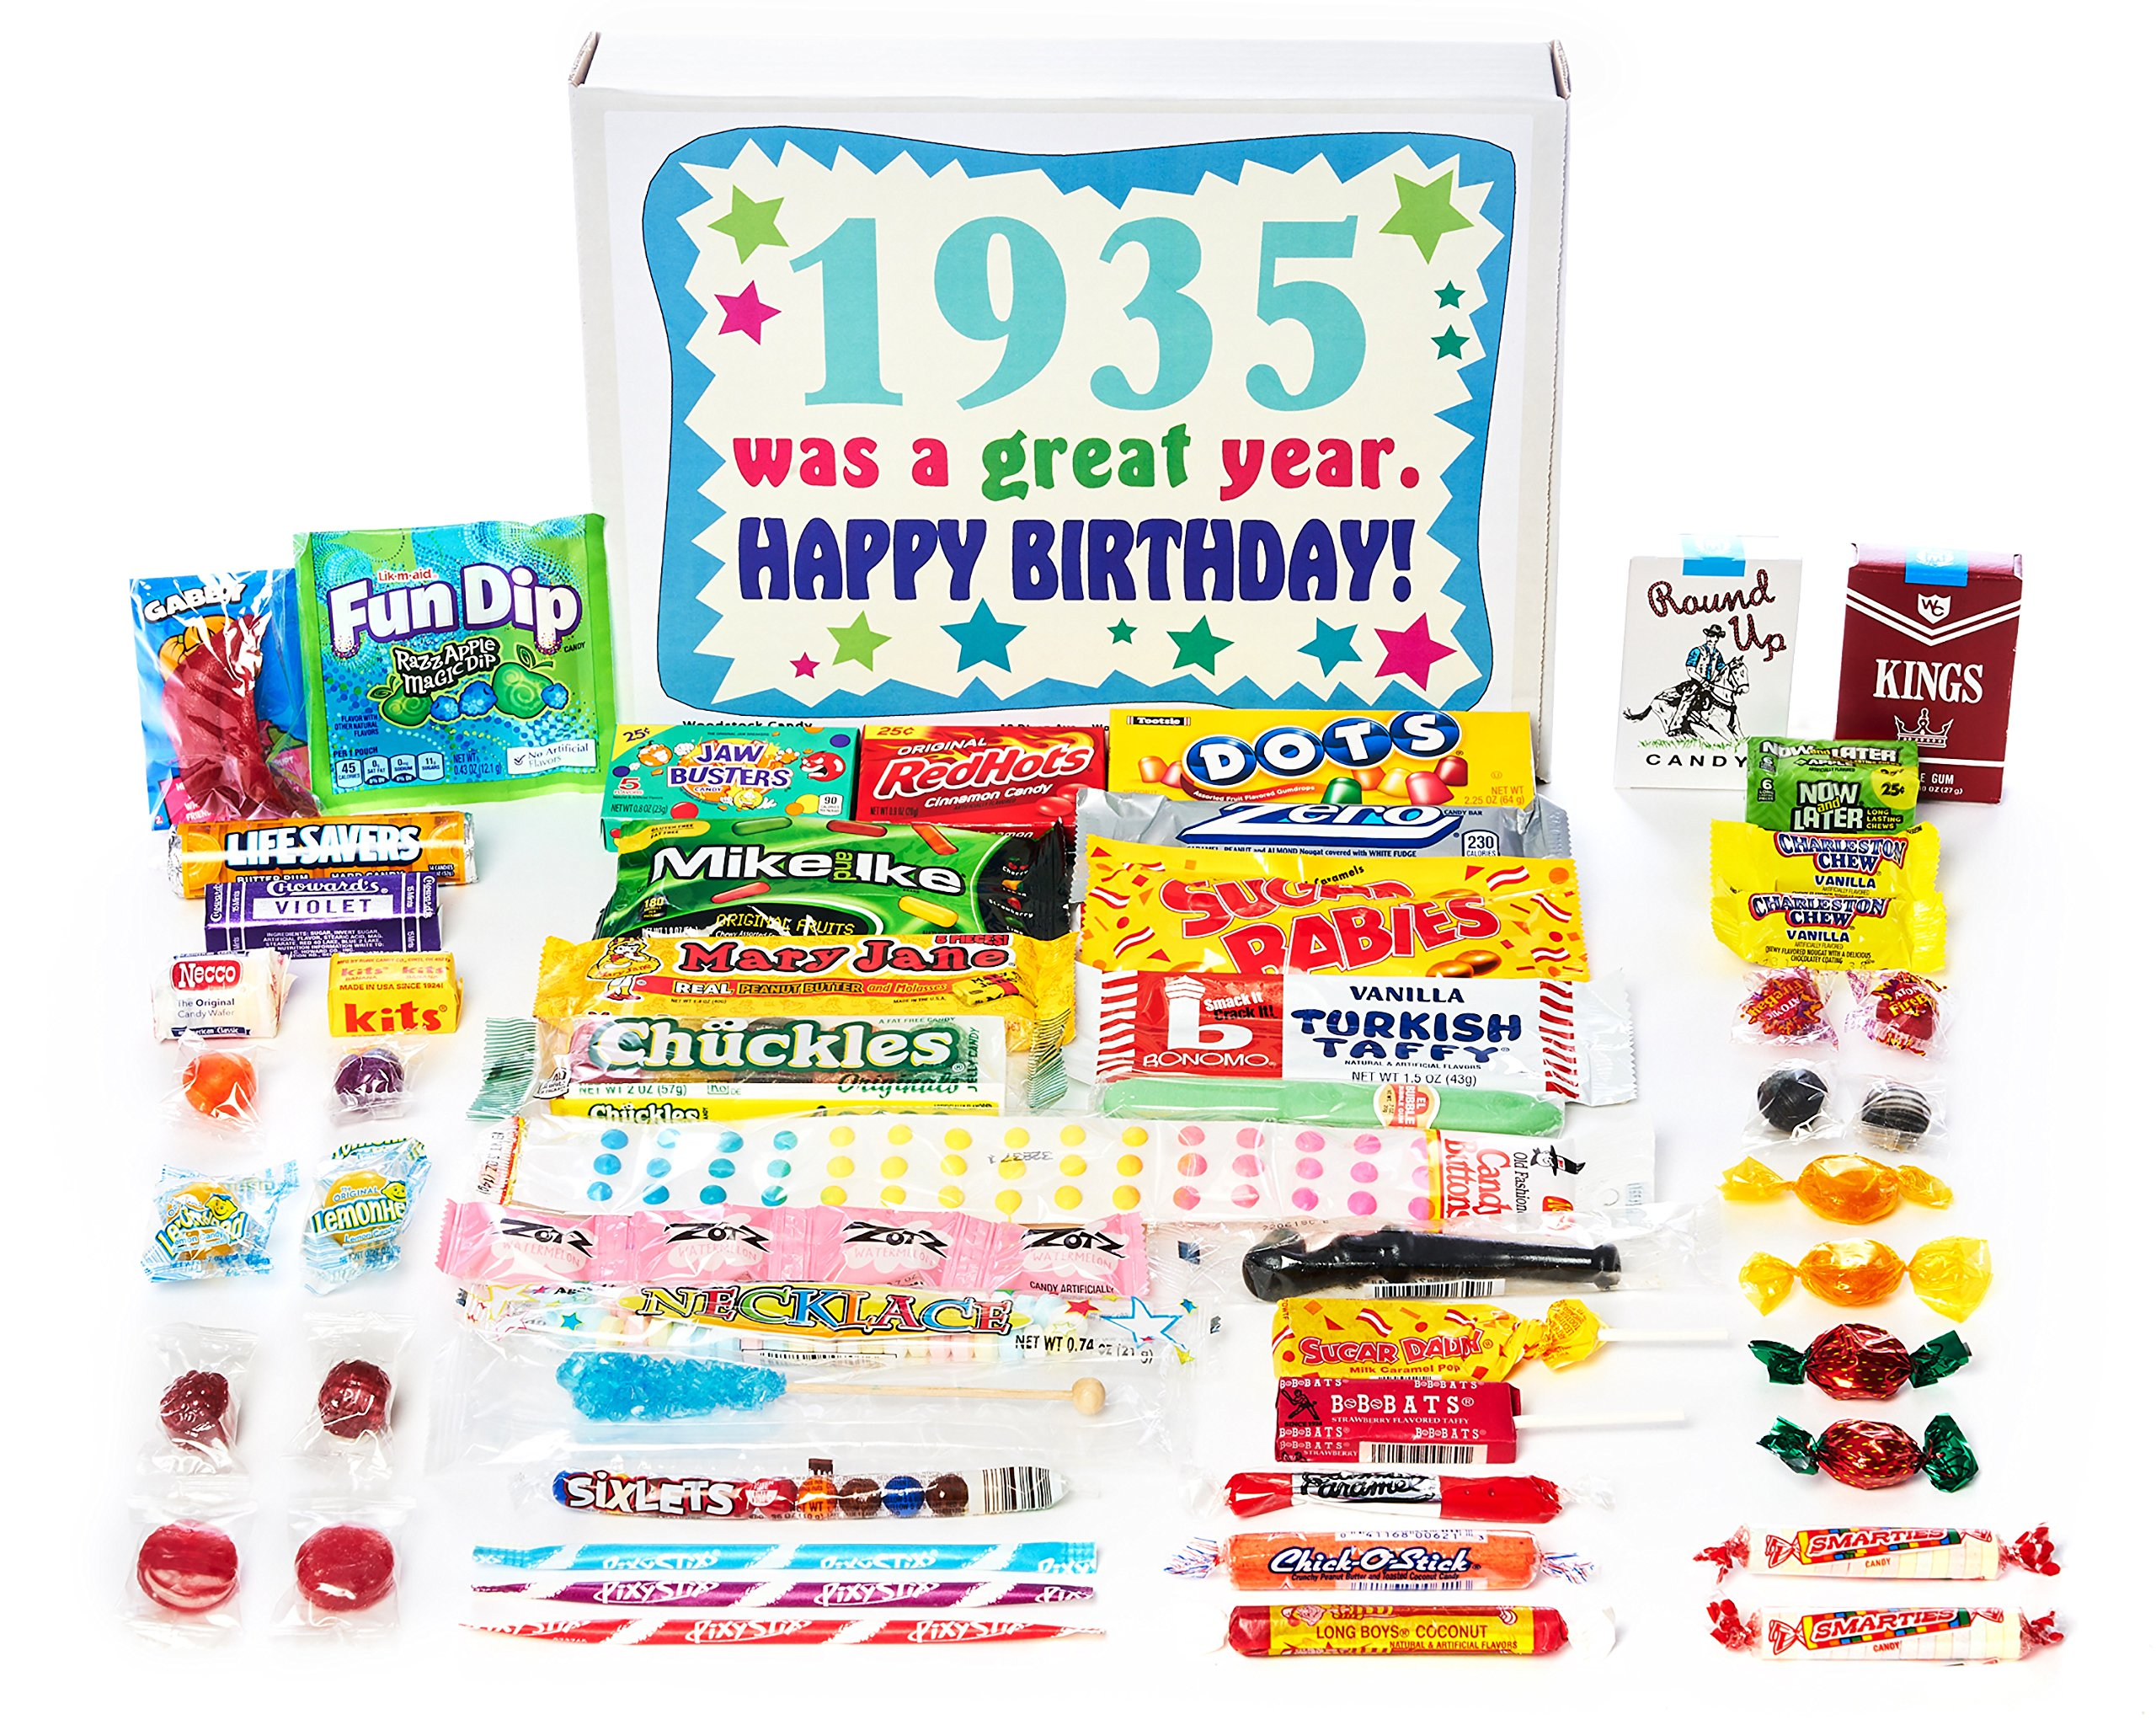 Woodstock Candy ~ 1935 84th Birthday Gift Box of Nostalgic Retro Candy Mix from Childhood for 84 Year Old Man or Woman Born 1935 by Woodstock Candy